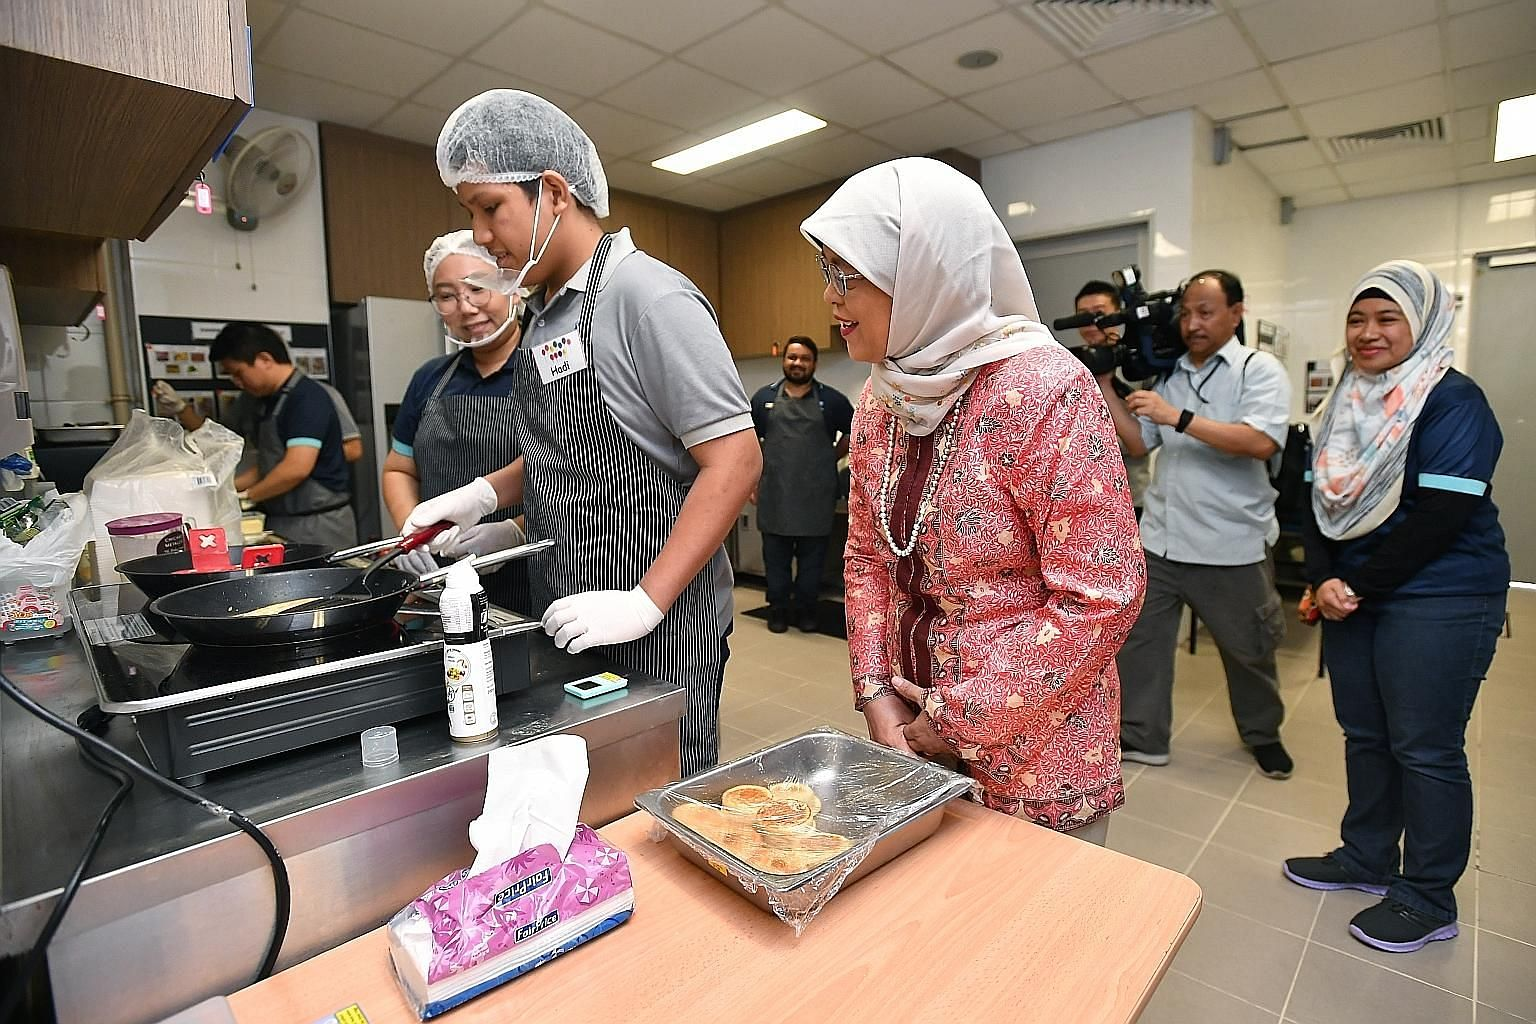 President Halimah Yacob watching Hadi Ukasyah Noor Asahar, 14, prepare food in the kitchen of Colours Cafe at St Andrew's Autism School yesterday. The in-house school cafe is run by students capable of work, so that they can develop skills and work h